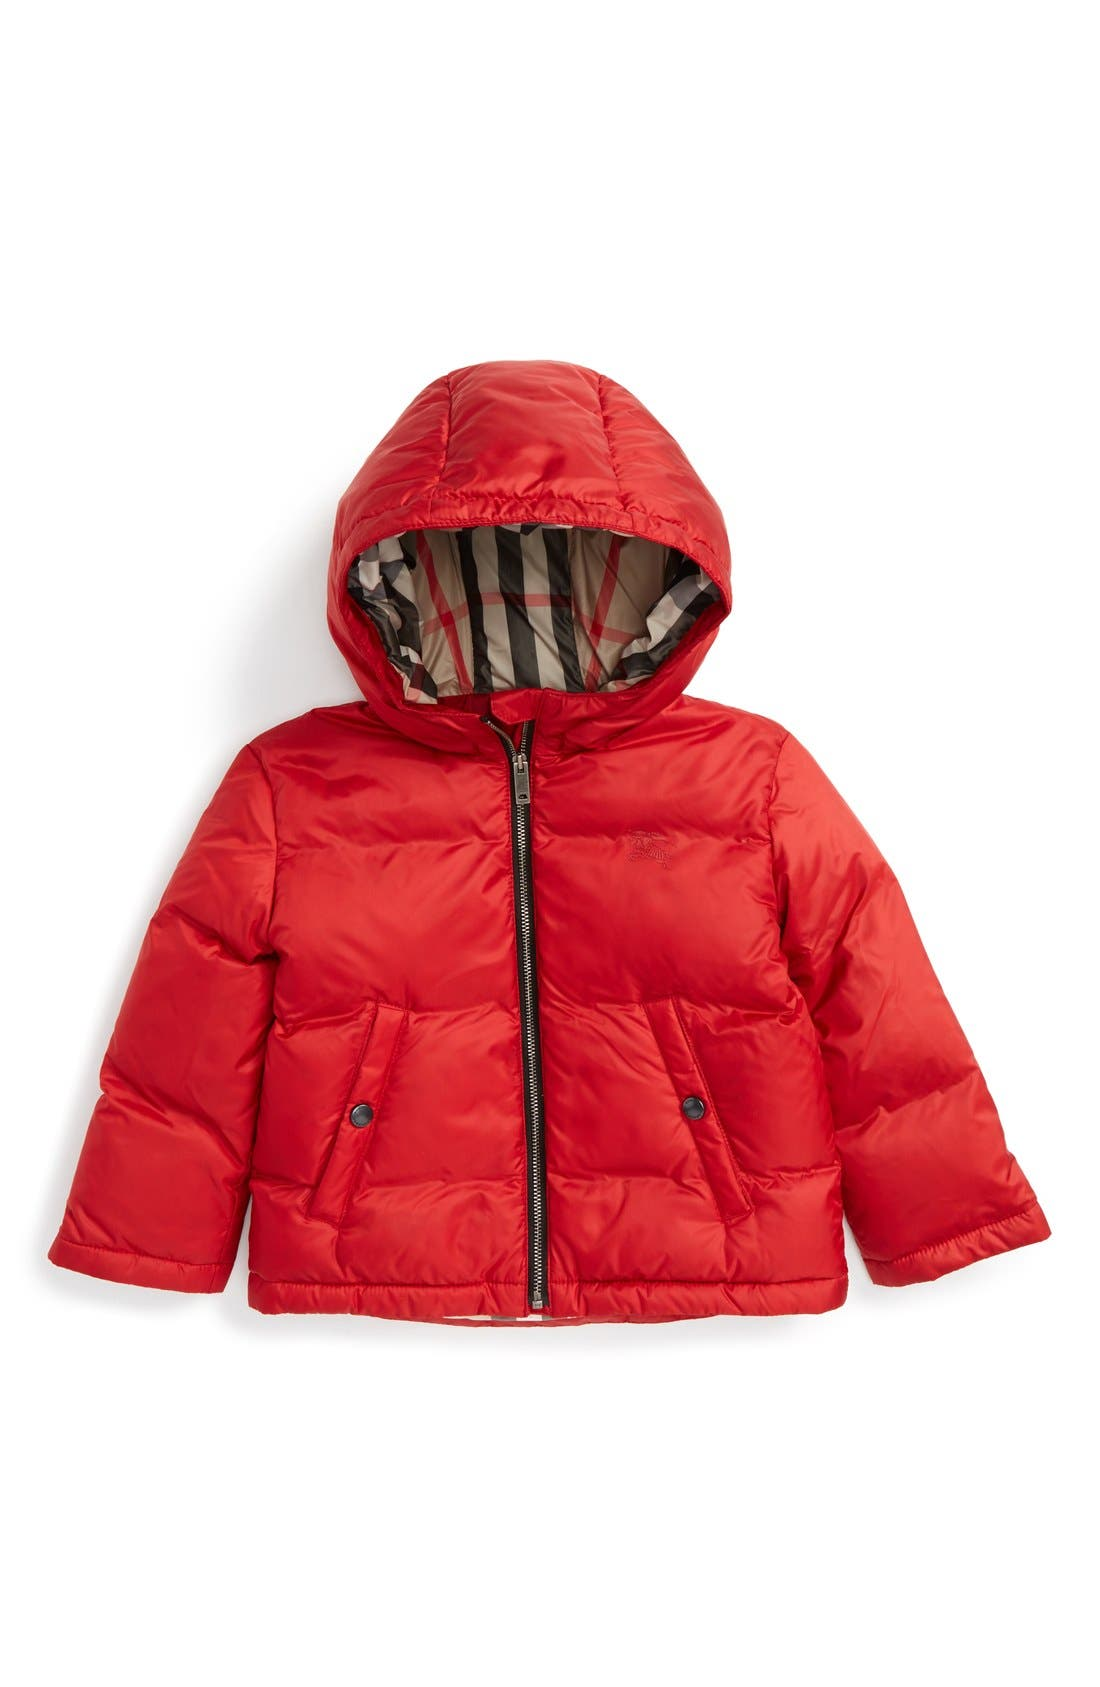 Burberry Rio Down Filled Puffer Jacket (Toddler Girls)